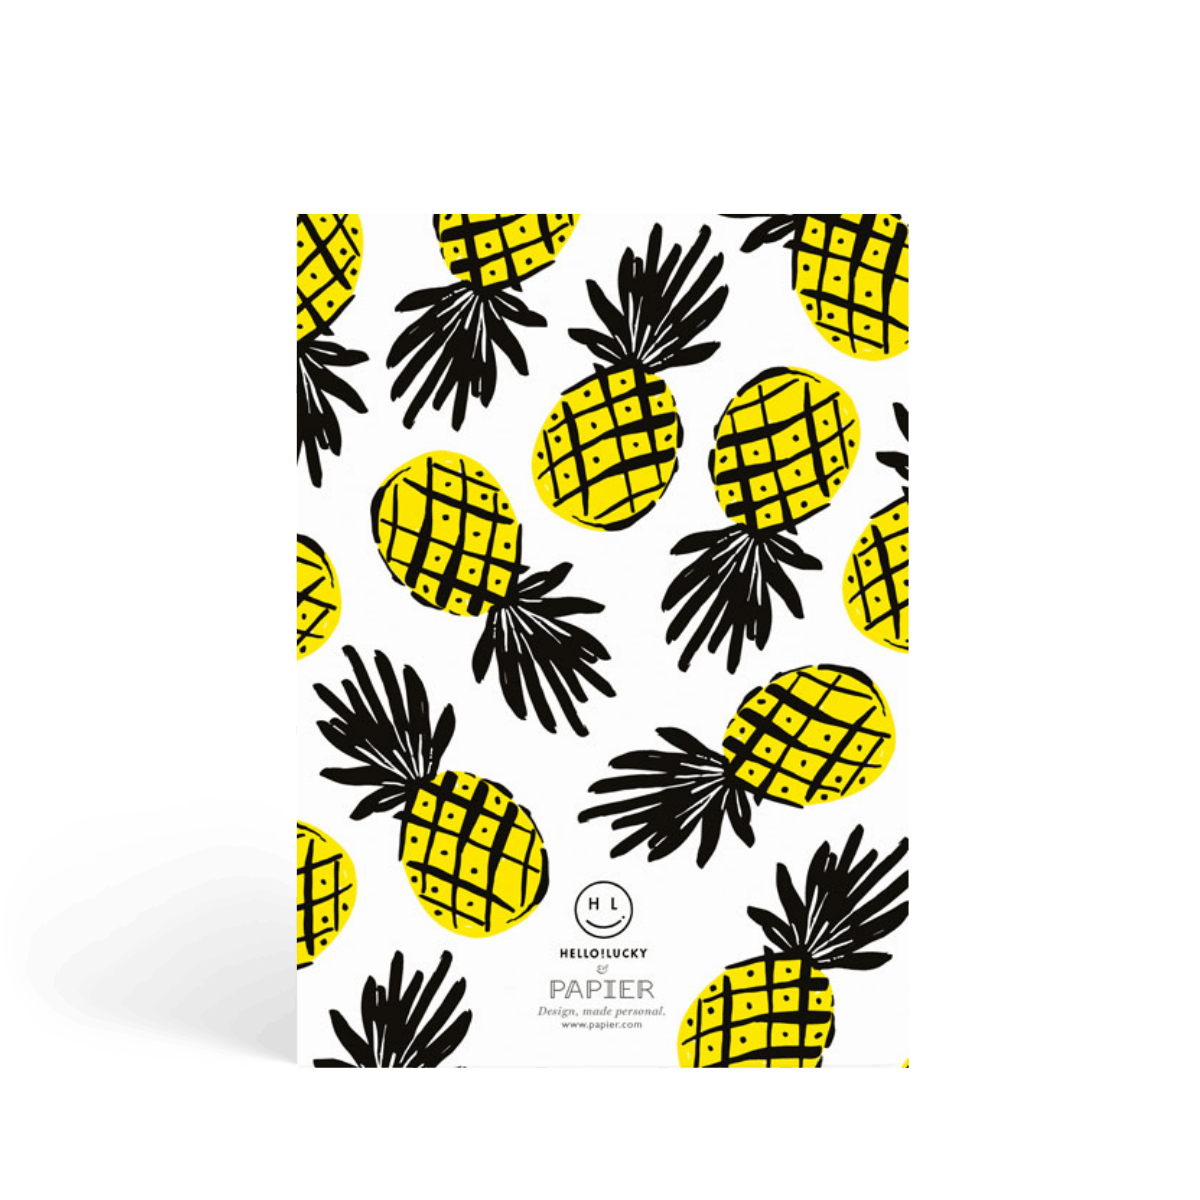 Https%3a%2f%2fwww.papier.com%2fproduct image%2f29507%2f5%2ftropical pineapple 7437 back 1554380403.png?ixlib=rb 1.1